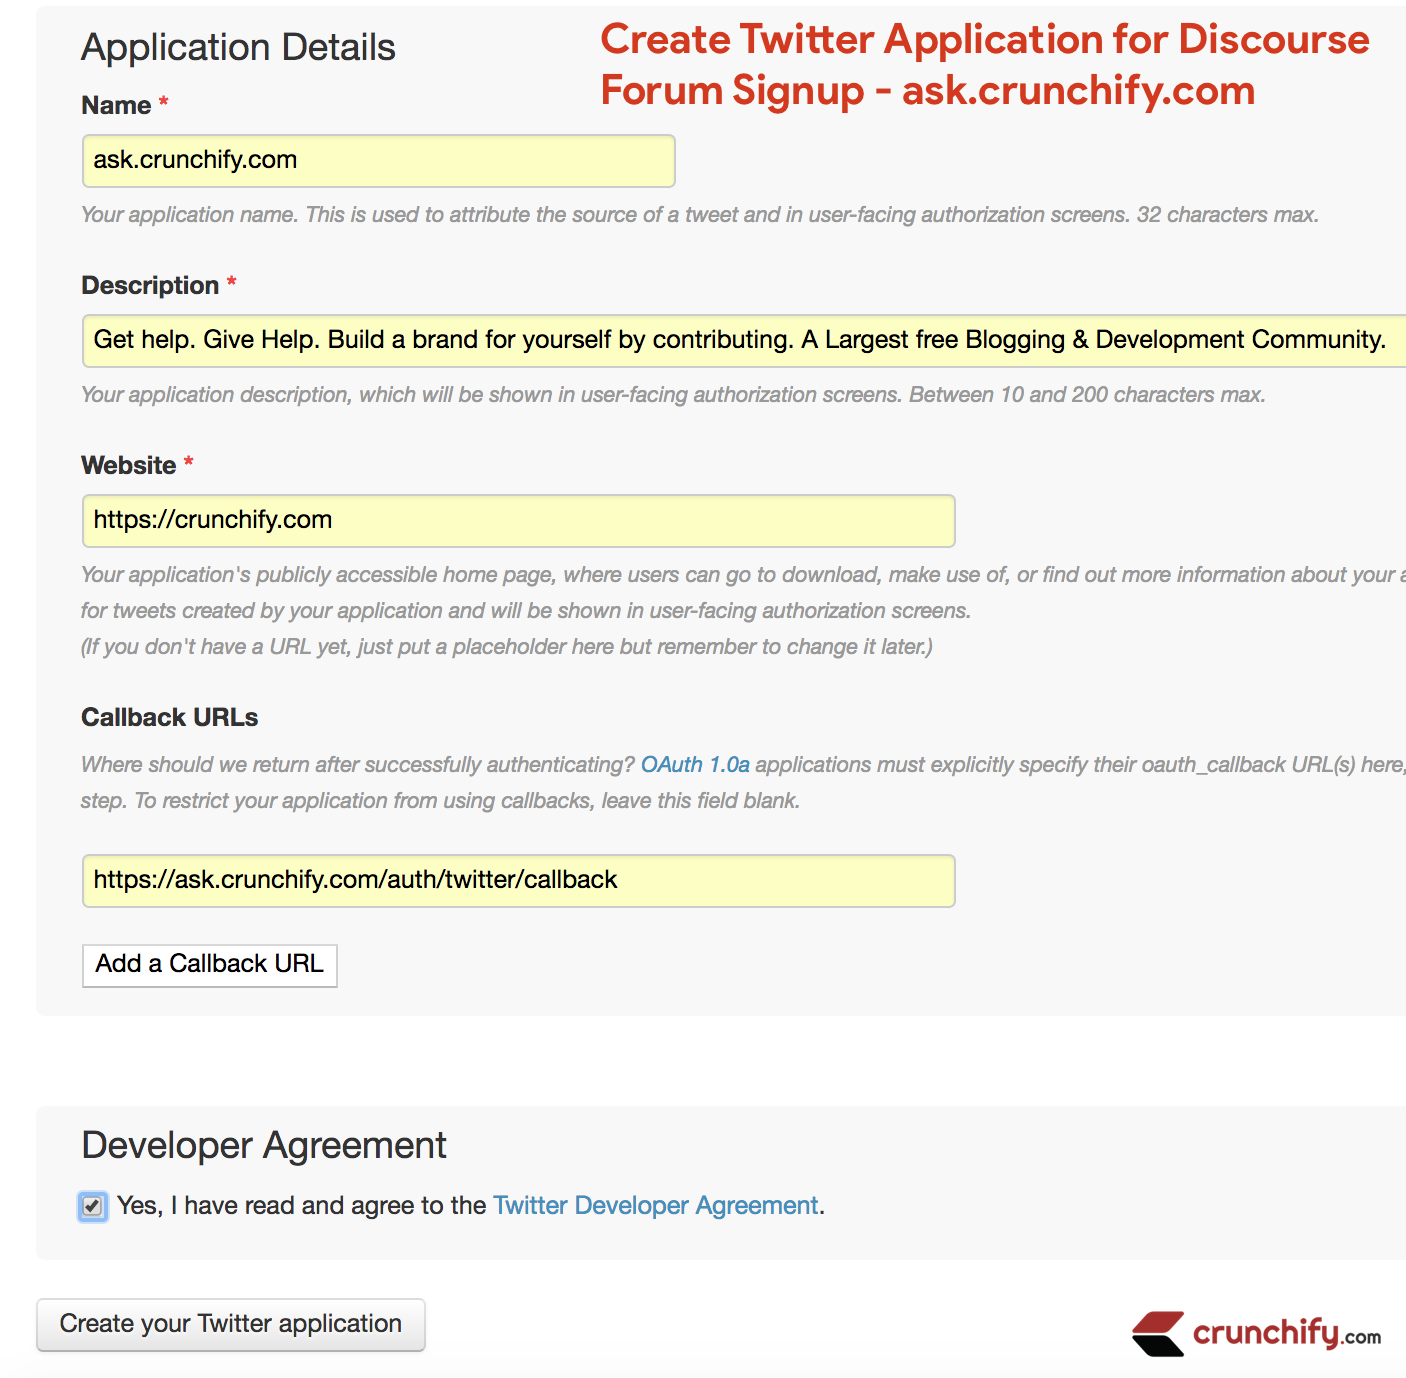 Create Twitter Application for Discourse Forum Signup - ask.crunchify.com